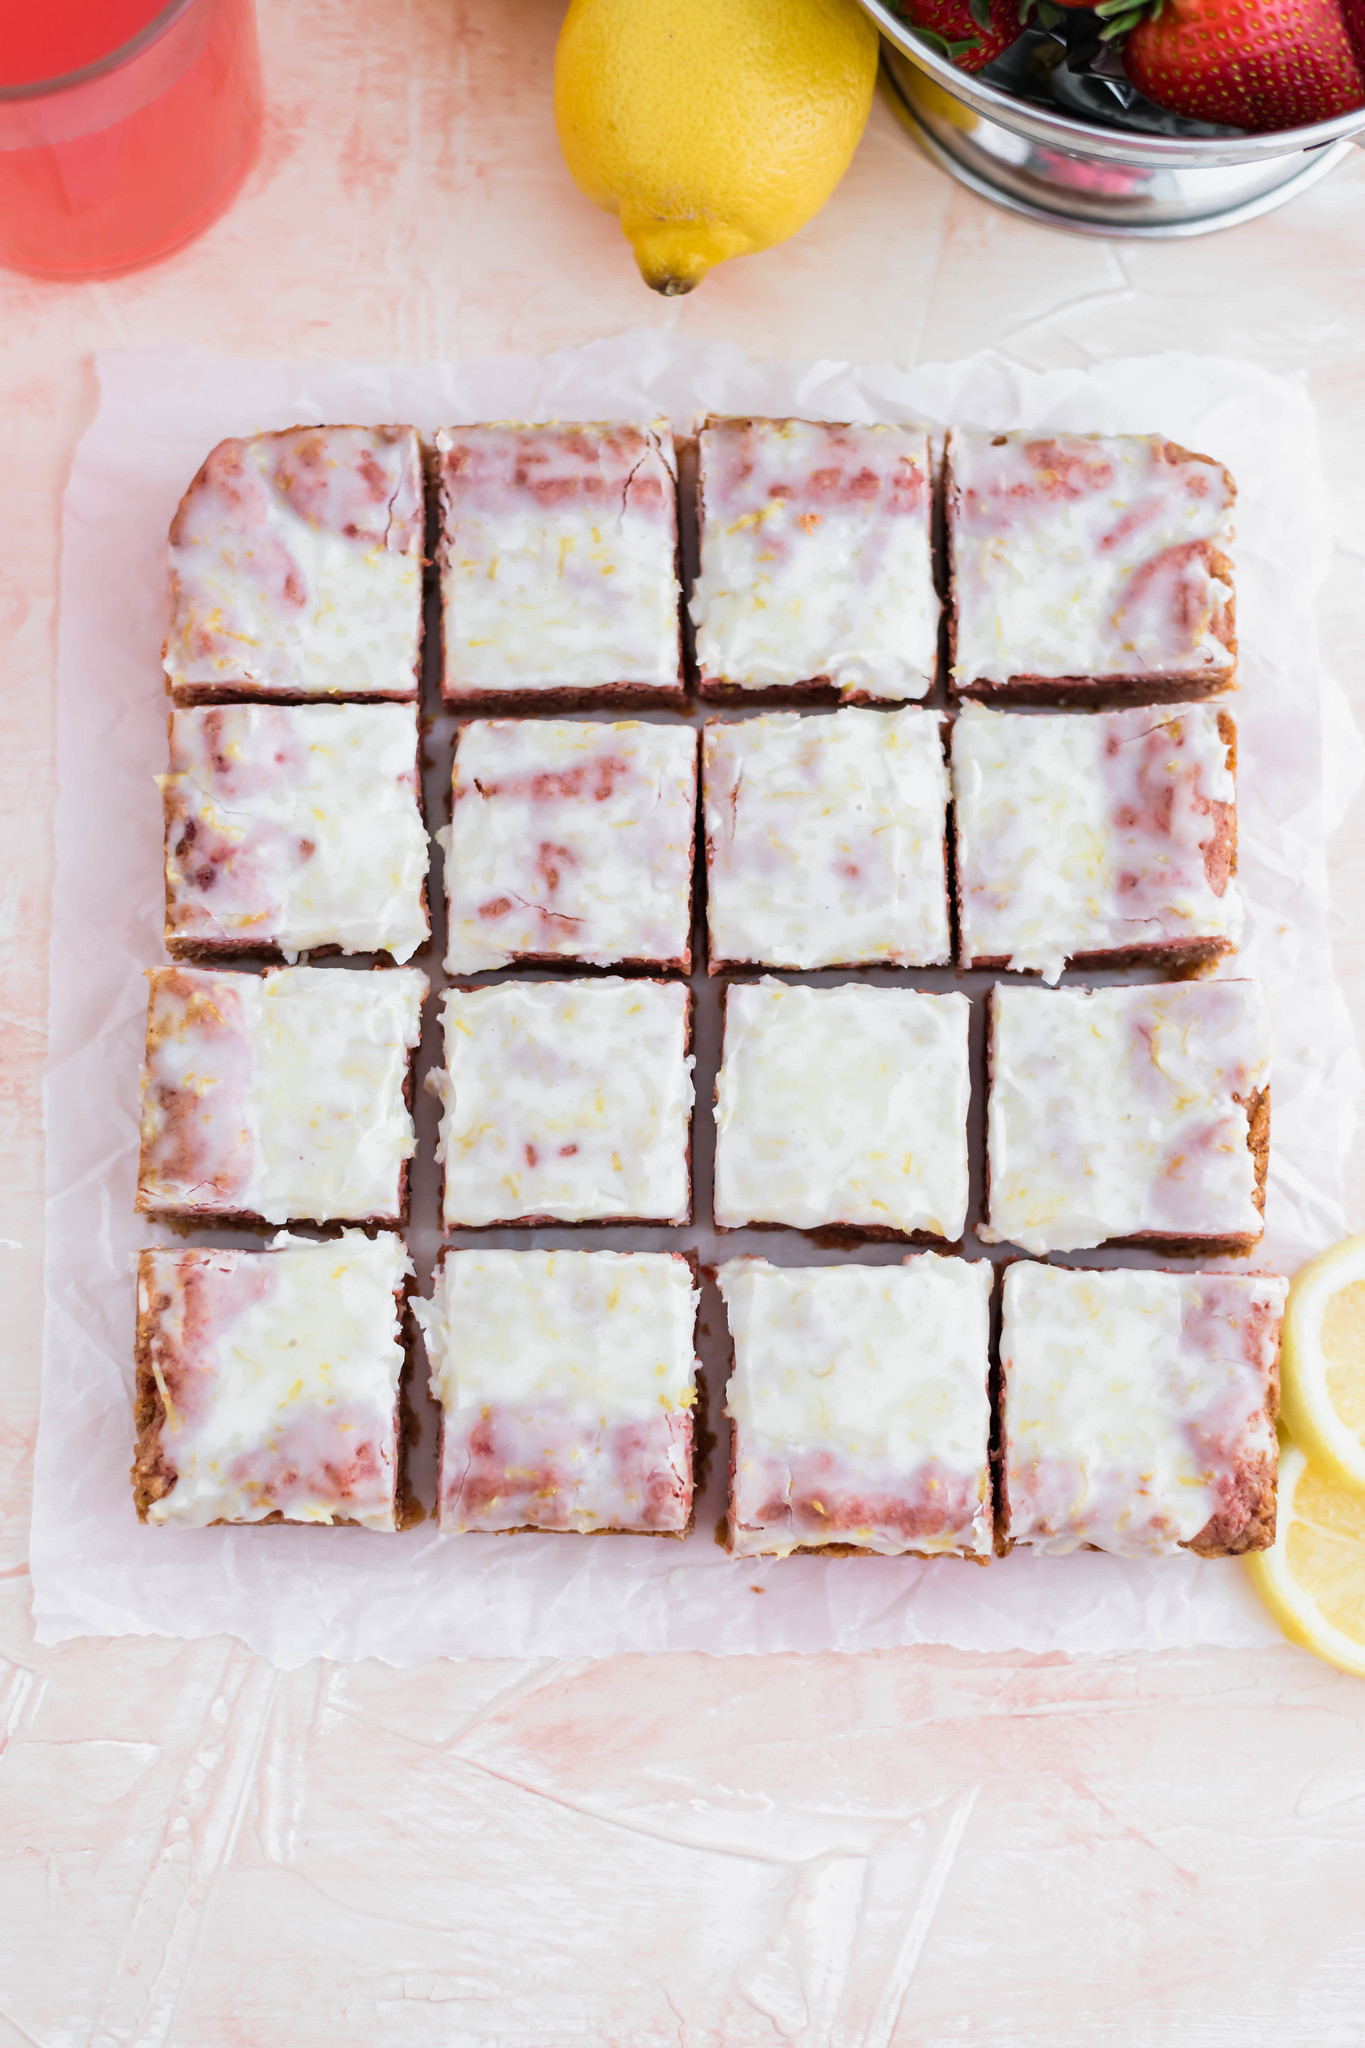 Looking for a sweet and zingy dessert perfect for spring? These Strawberry Lemonade Bars are quick to make and start with a lemon cake mix.